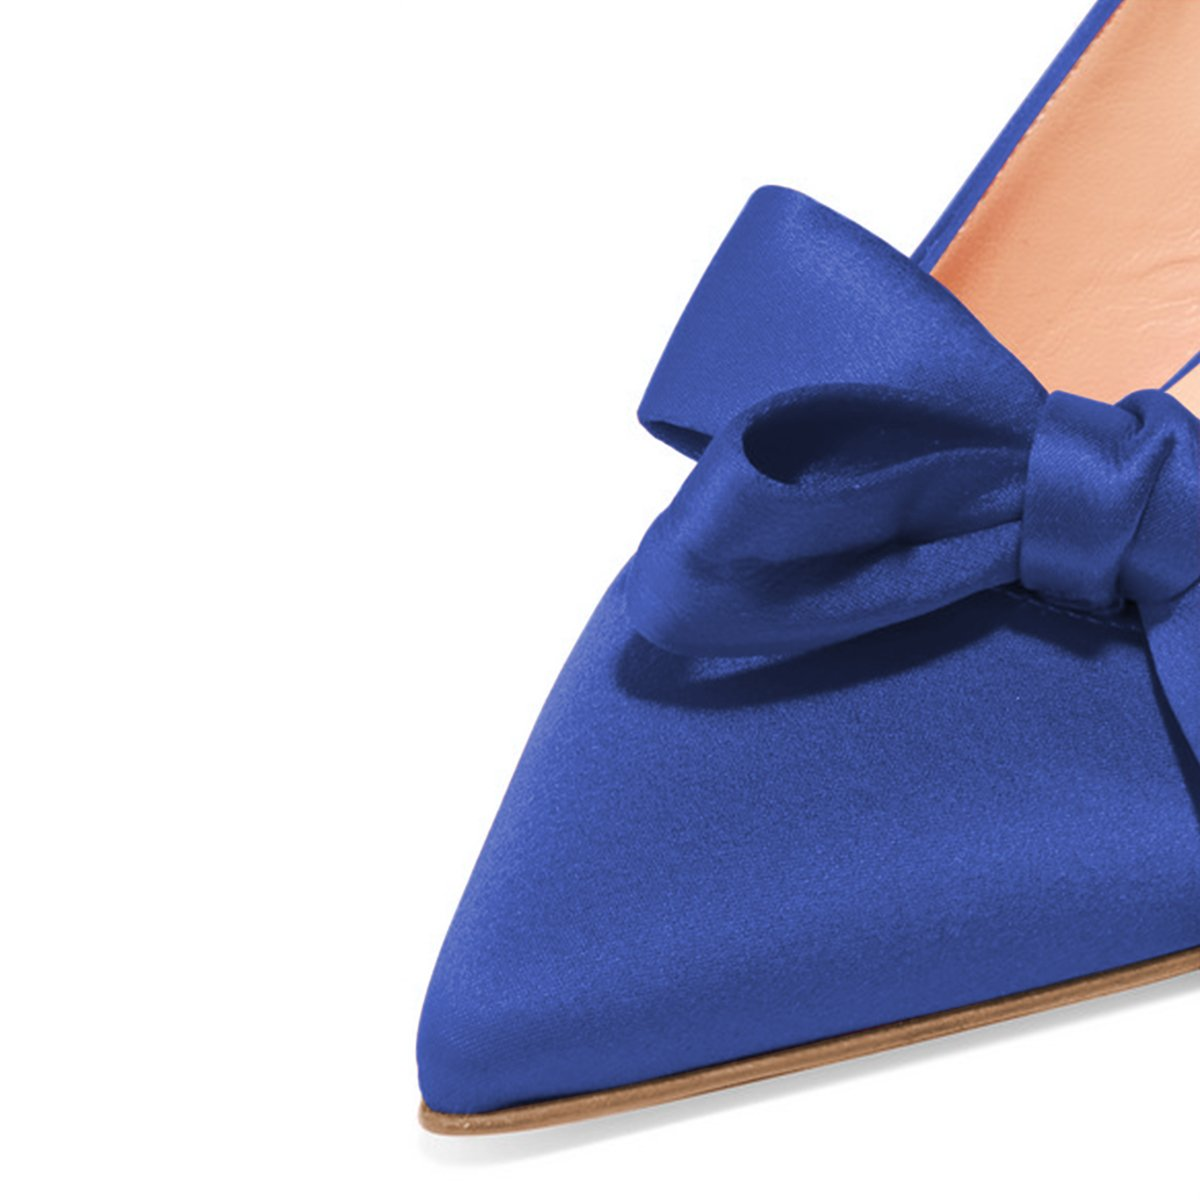 XYD Women Fashion High Pointed Toe Slingback Pumps High Fashion Heel Slip On Dress Shoes with Bows B0799H83P8 8.5 B(M) US|Blue Suede b6b468